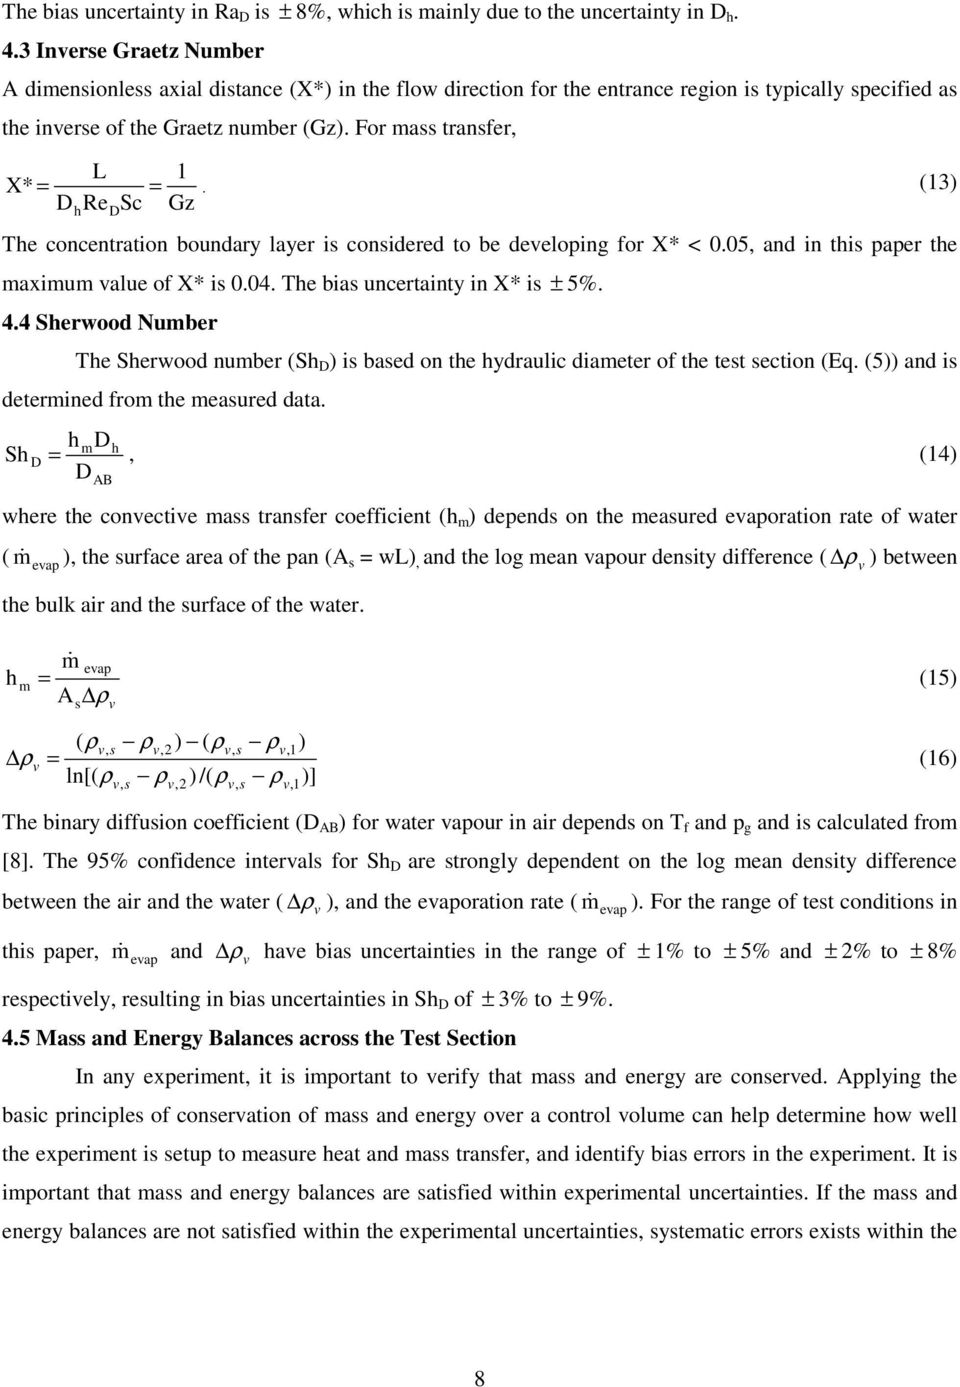 For mass transfer, L 1 X* = =. (13) Re Sc Gz h The concentration boundary layer is considered to be developing for X* < 0.05, and in this paper the maximum value of X* is 0.04.